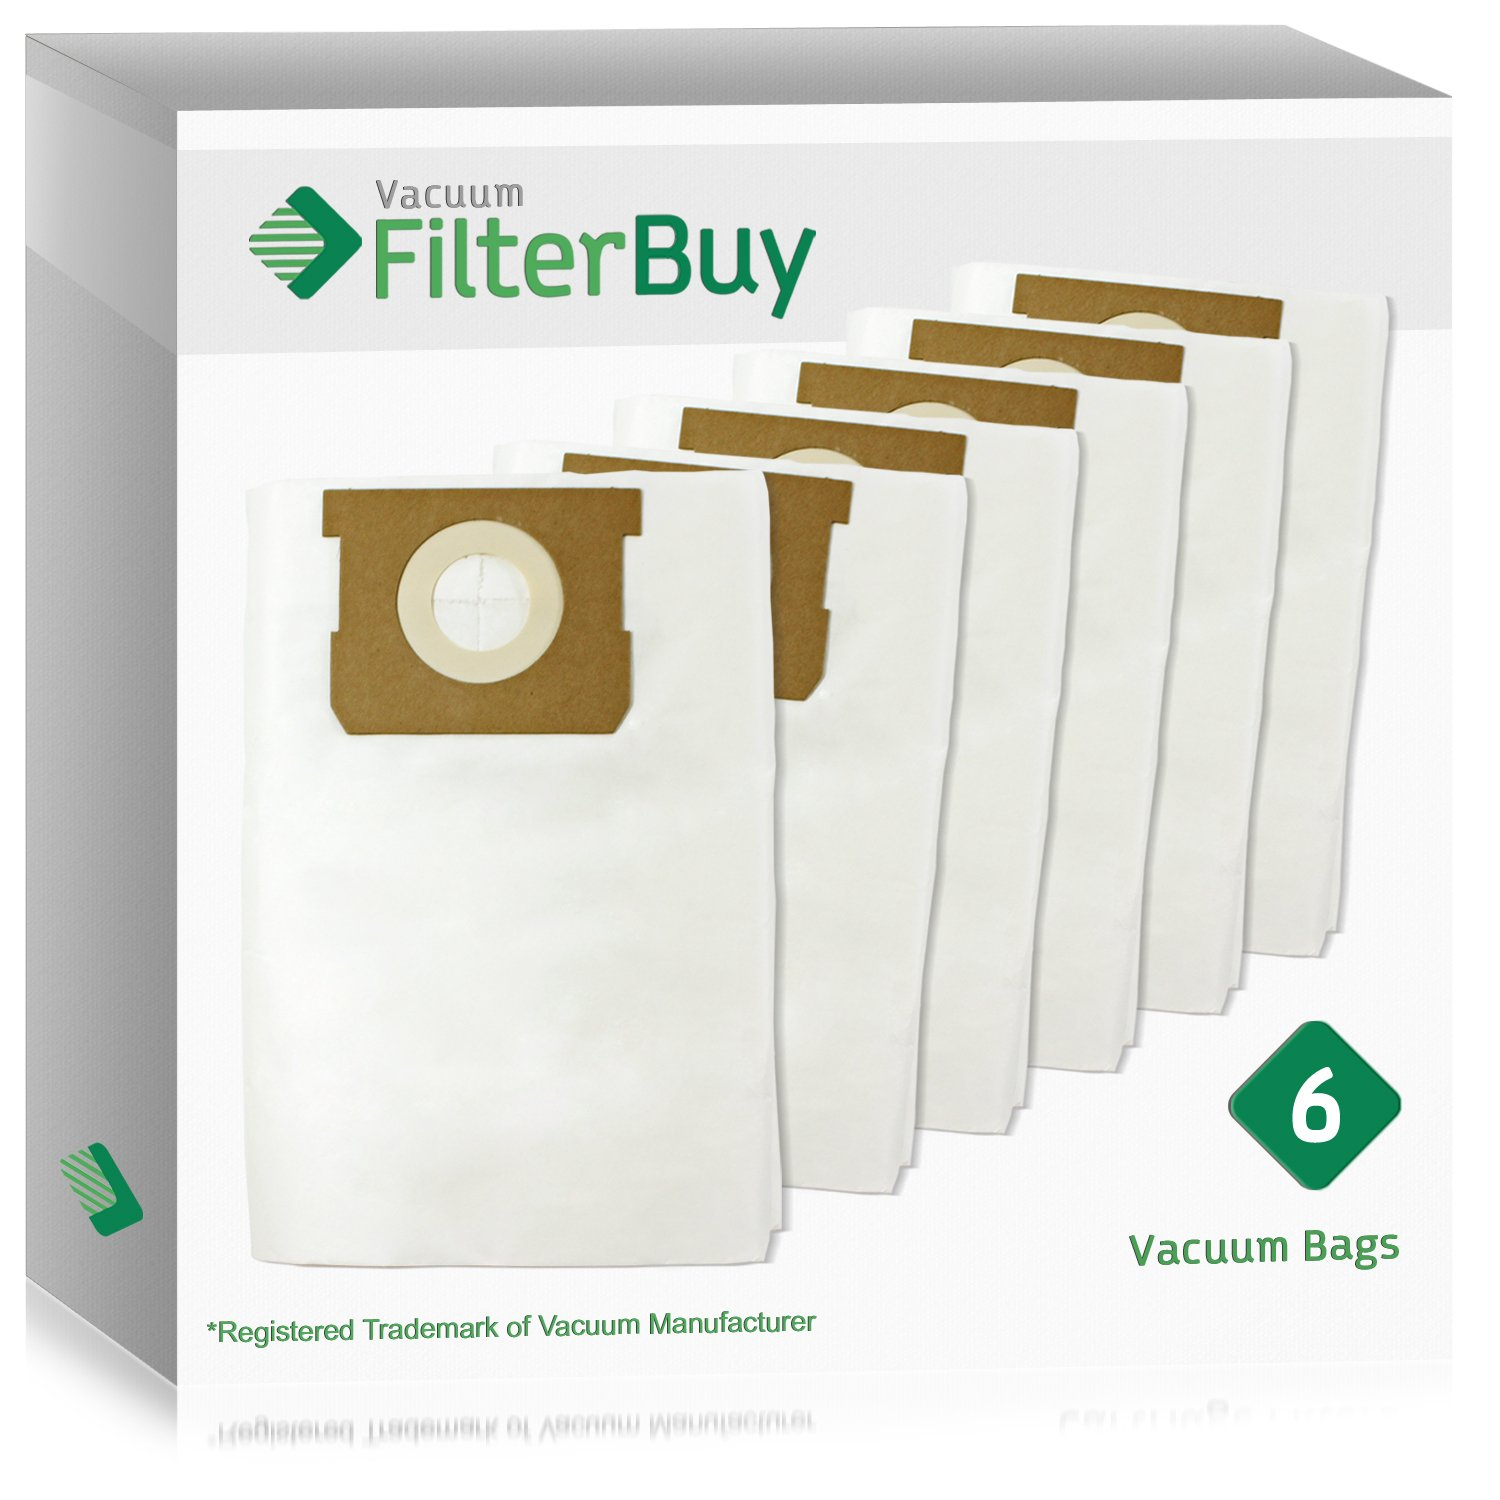 6 - FilterBuy VacMaster Compatible Dust Bags. Designed by FilterBuy to fit VacMaster & Shop-Vac Vacuum Cleaners.